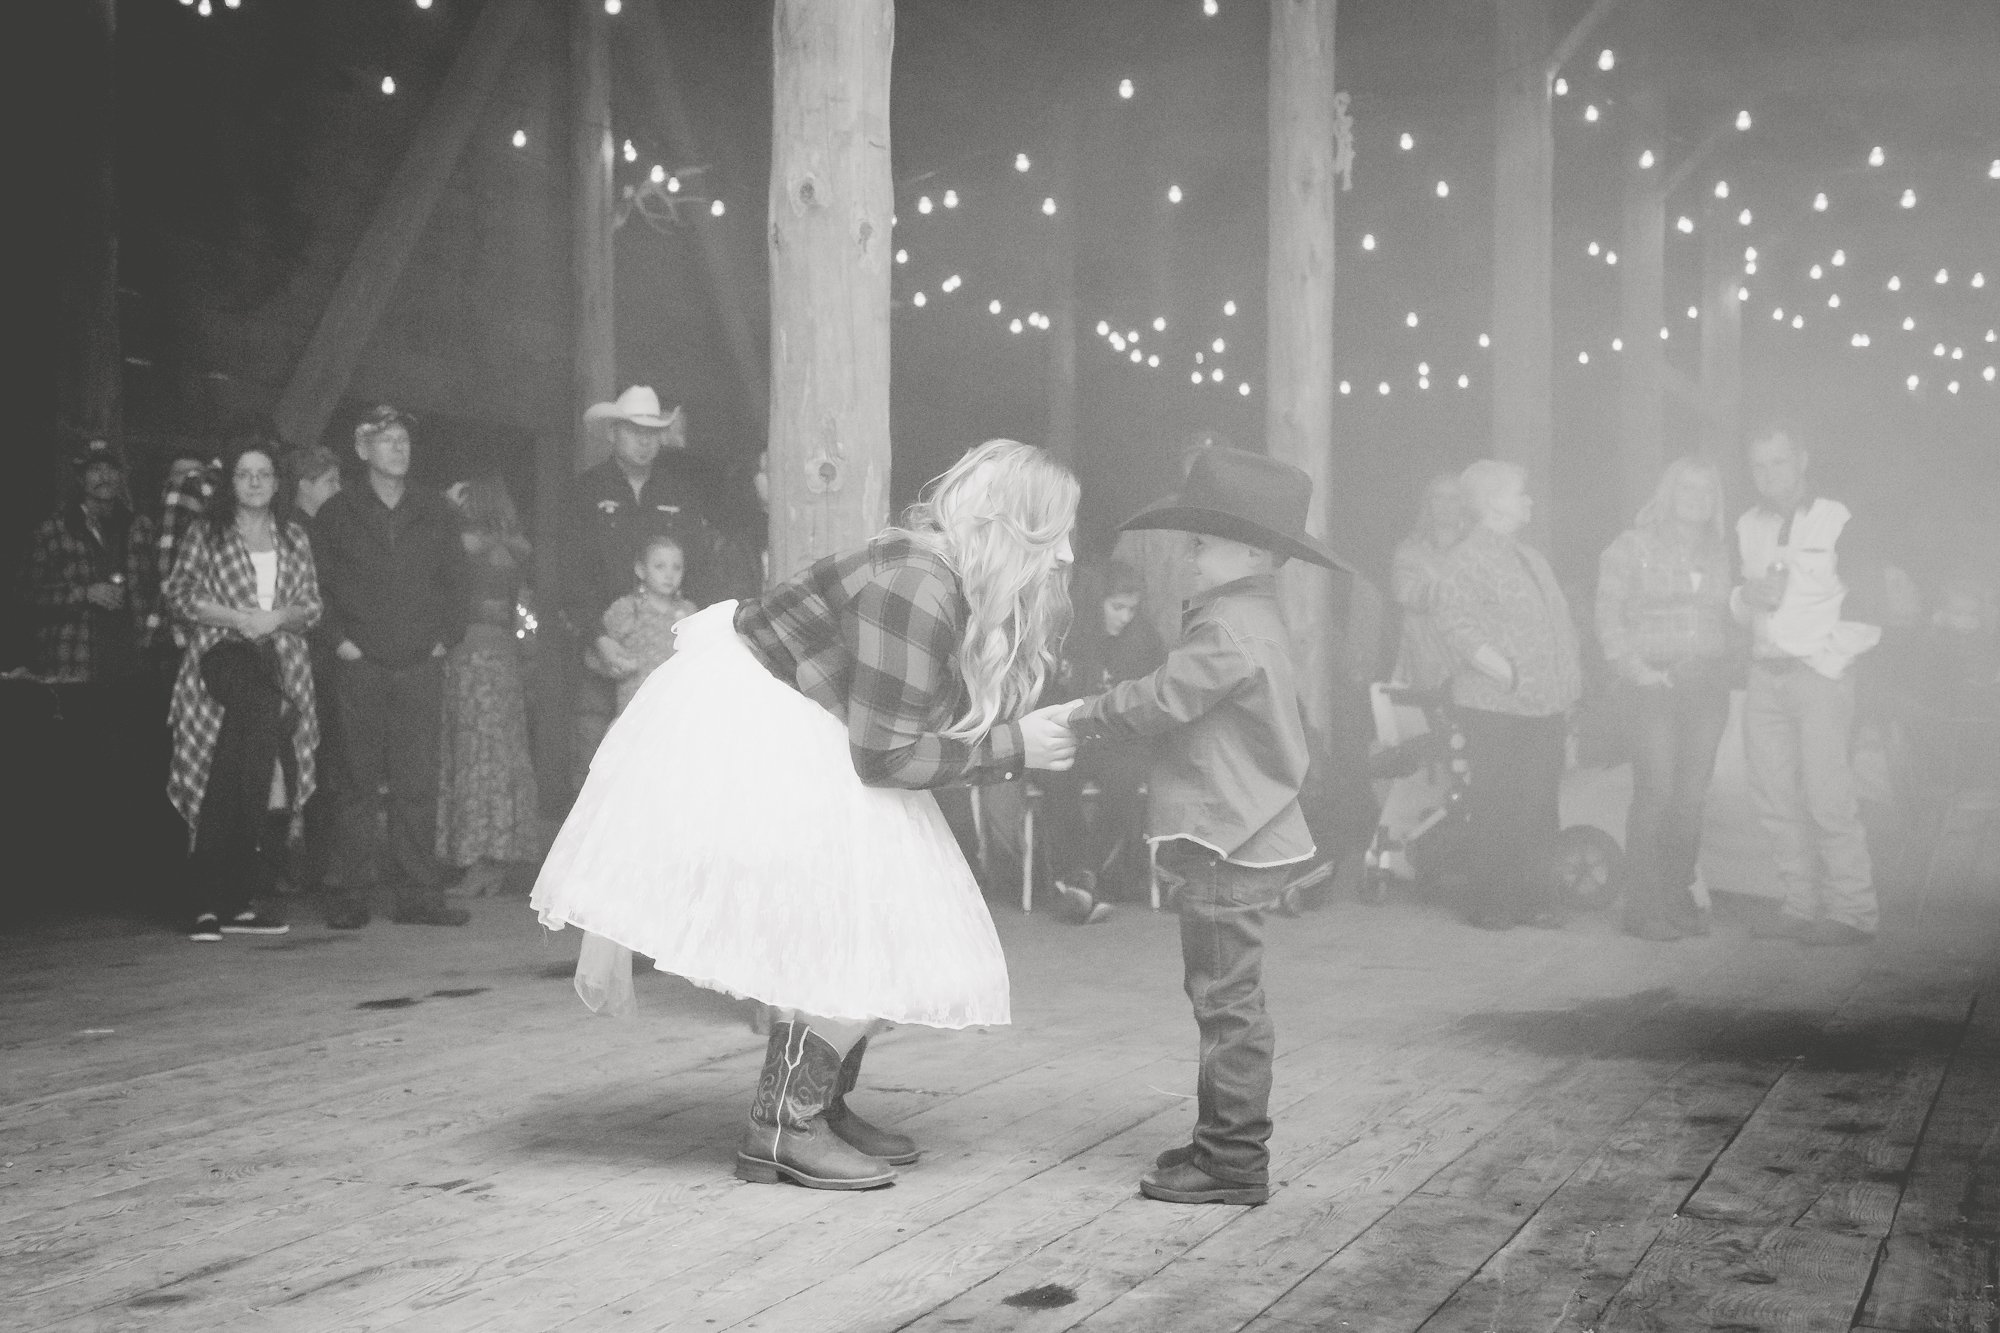 A bride dancing with her son in a barn on her wedding day